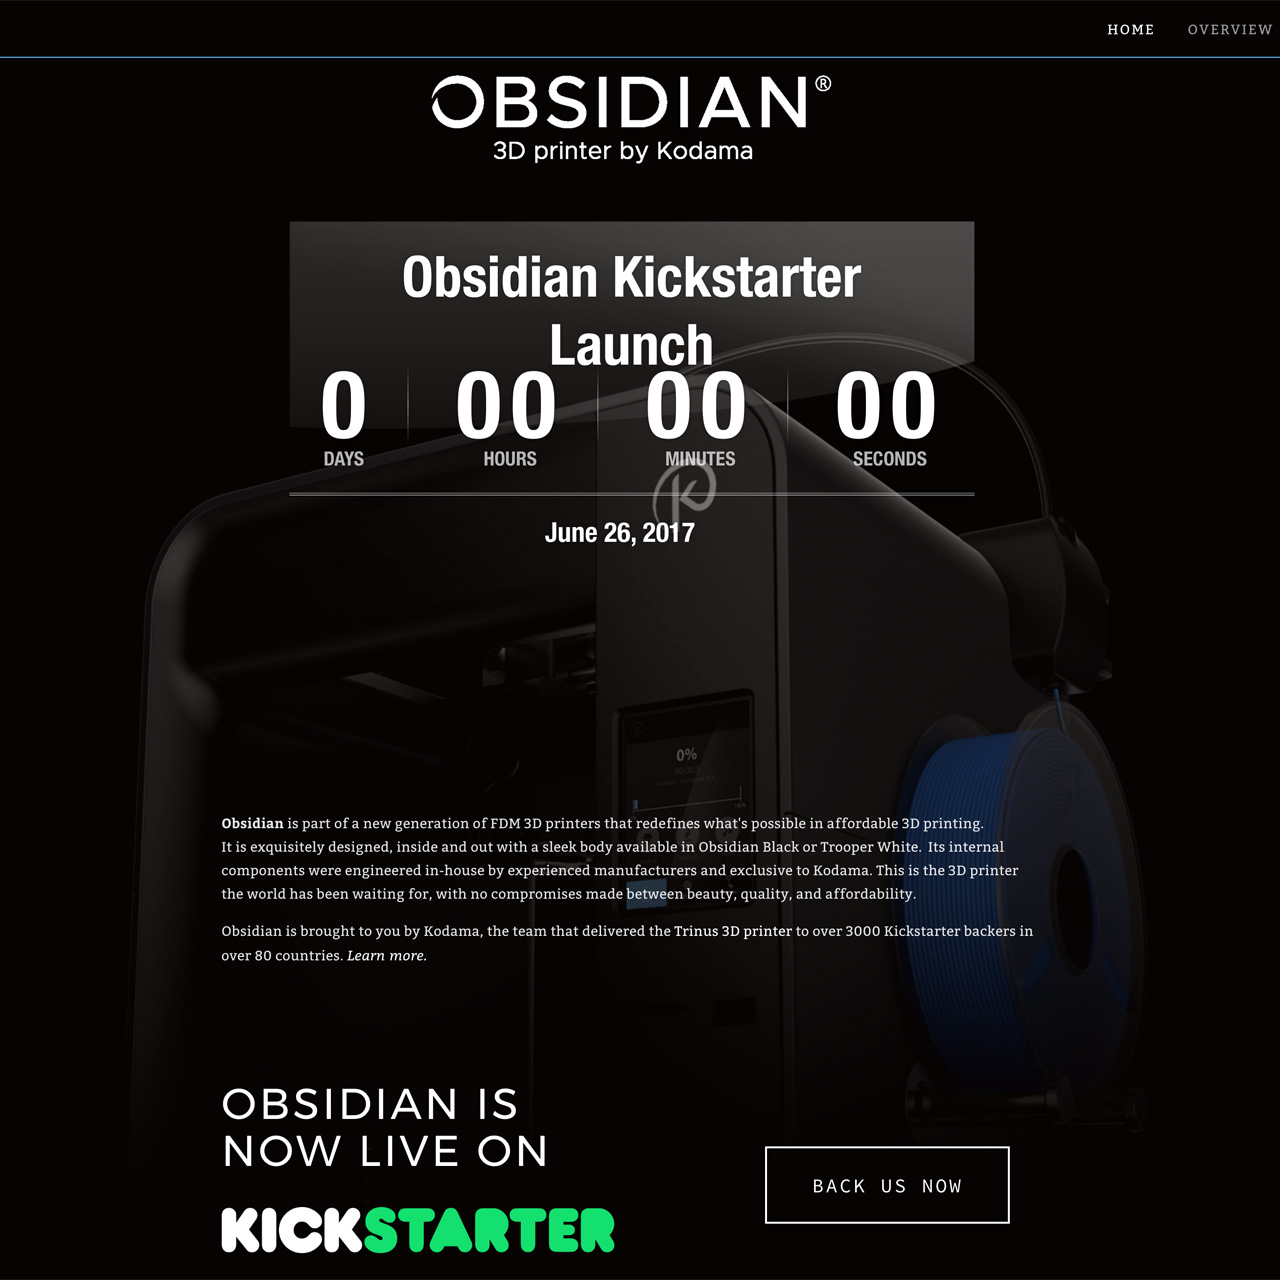 Obsidian 3D Printer 2017-06-28 9.28.38のコピー